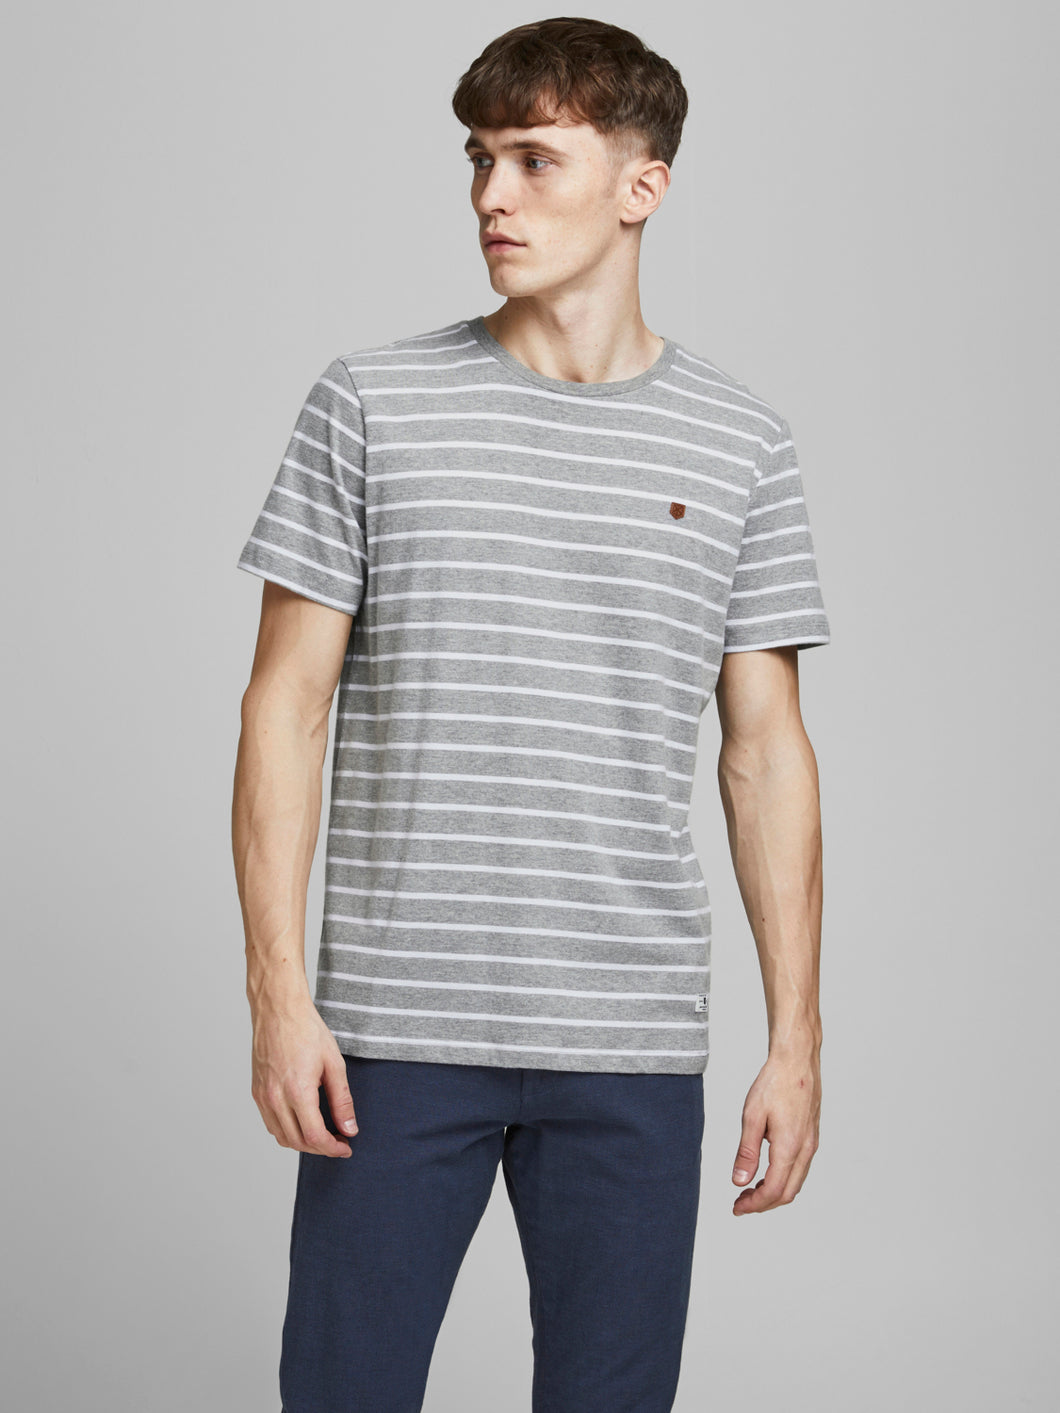 JPRBLUTOM T-shirt - light grey melange